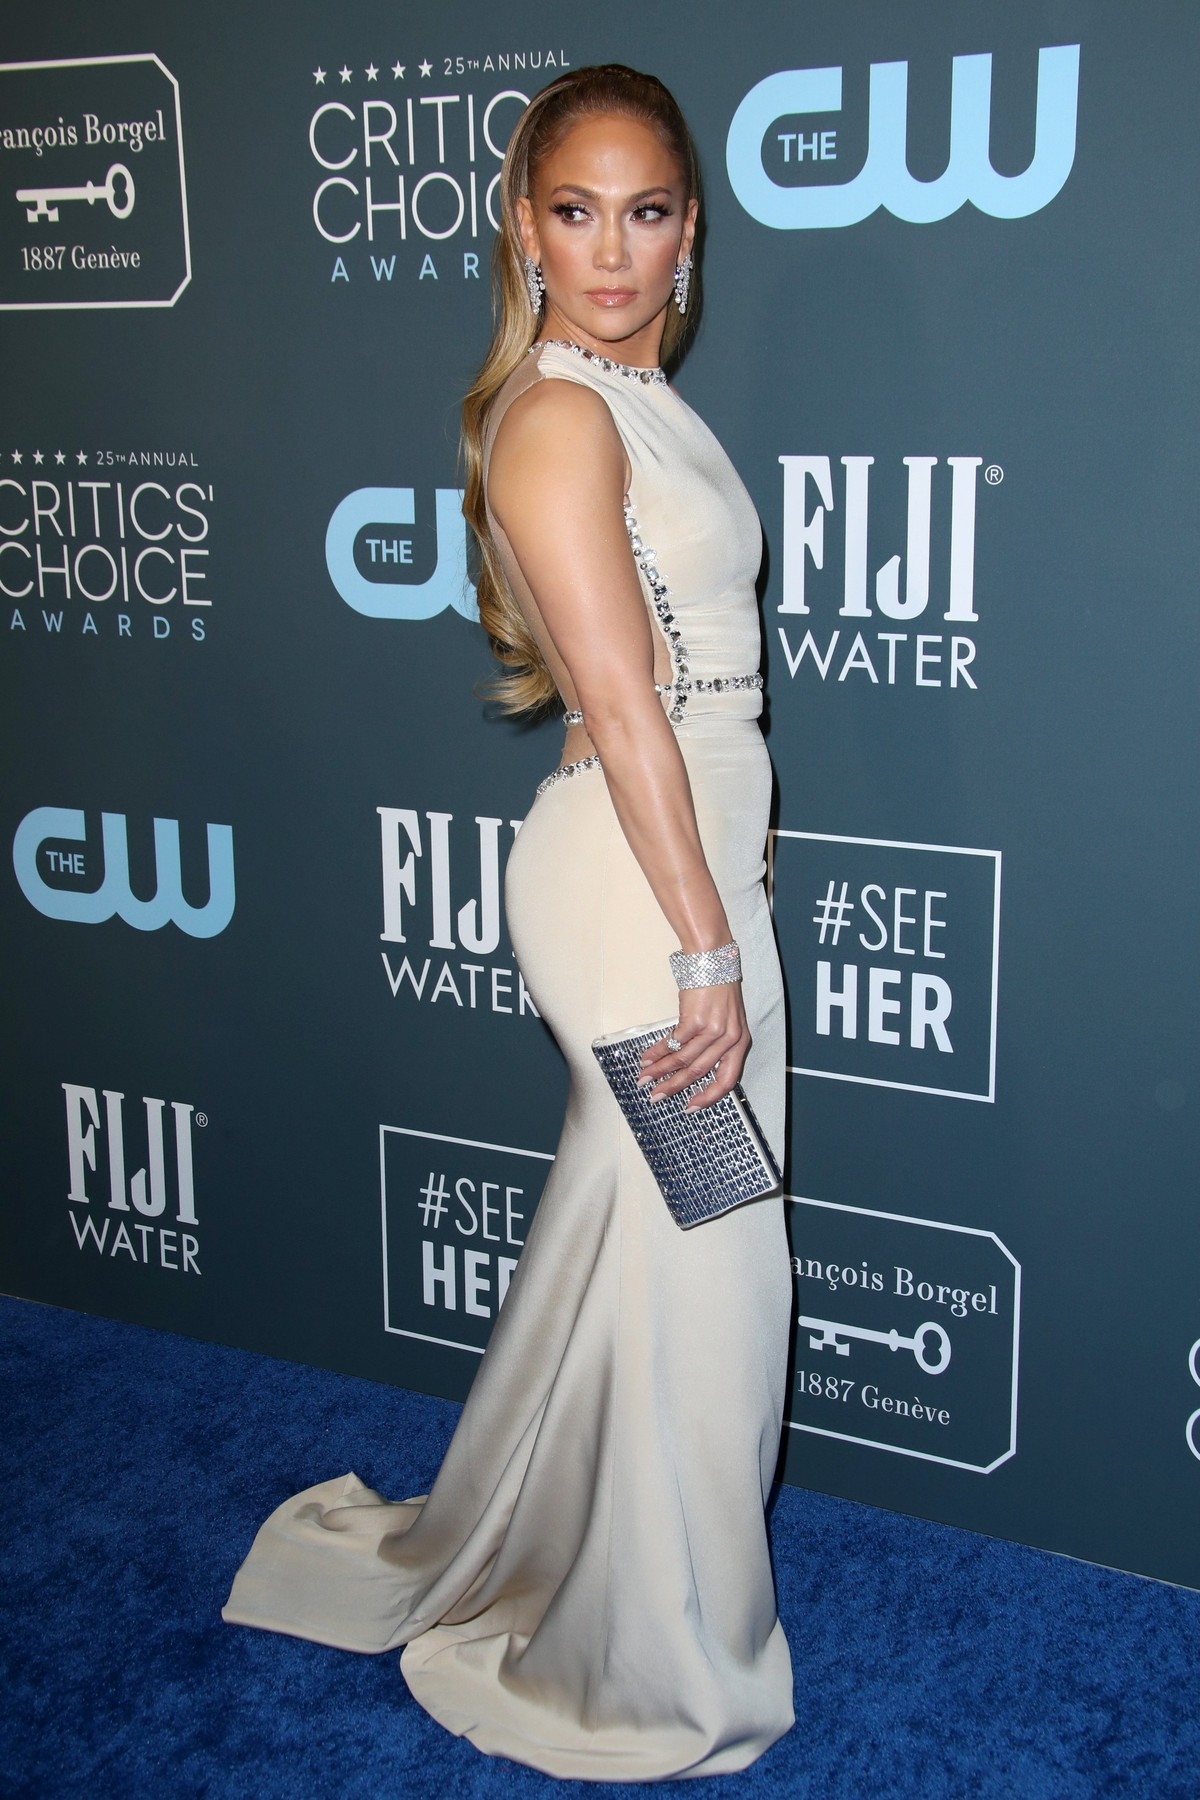 Jennifer Lopez 25th Annual Critics' Choice Awards, Arrivals, Barker Hanger, Los Angeles, USA - 12 Jan 2020, Image: 492412442, License: Rights-managed, Restrictions: , Model Release: no, Credit line: Matt Baron / Shutterstock Editorial / Profimedia